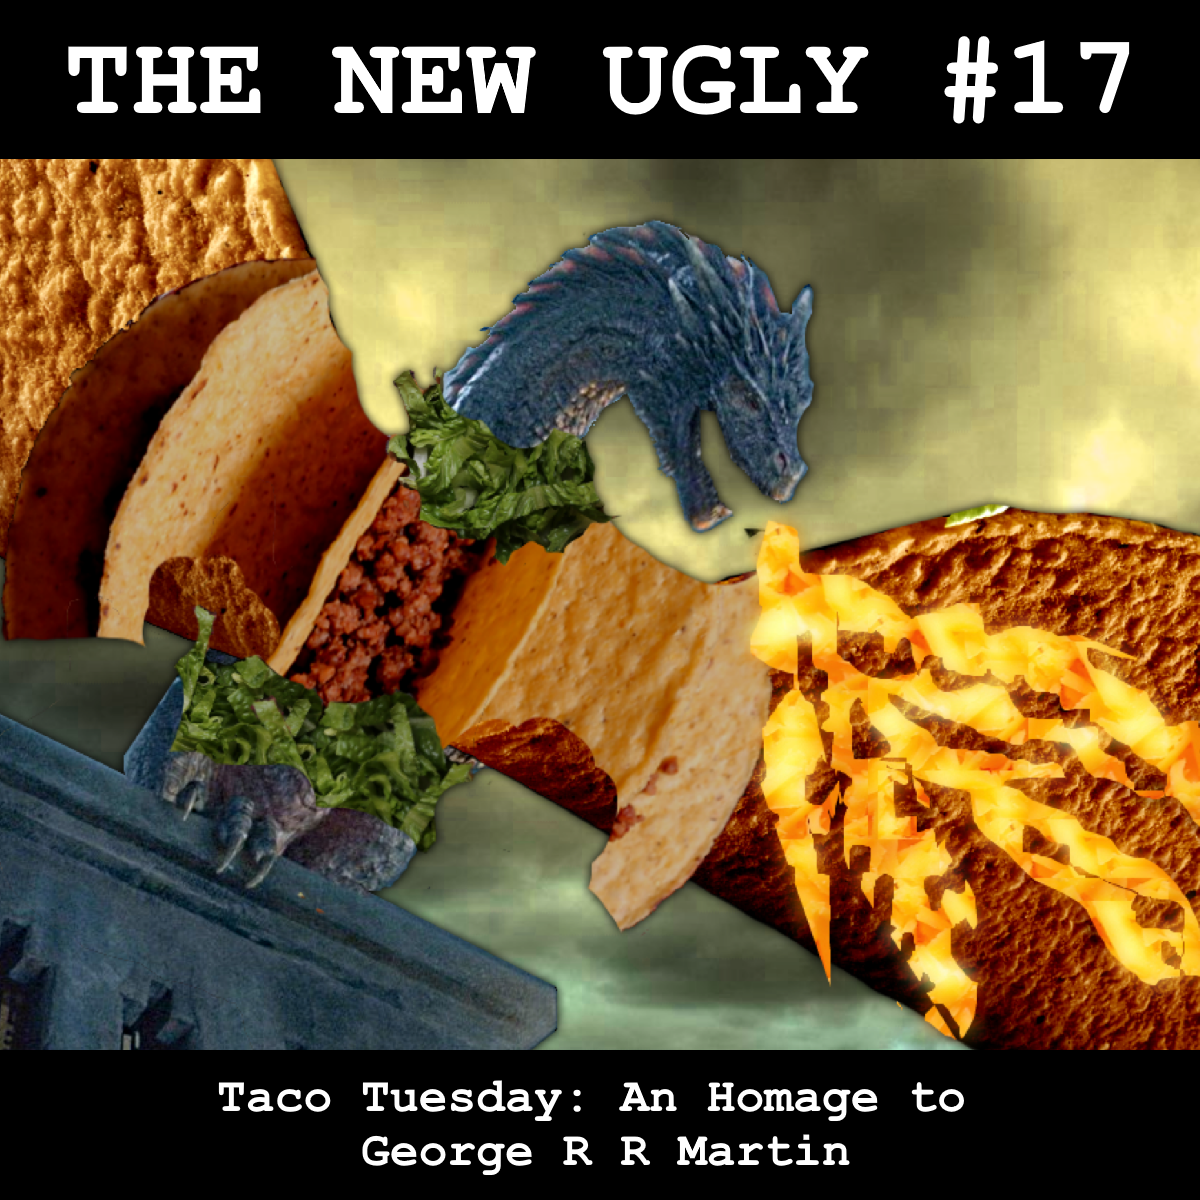 Episode 17: Taco Tuesday - An Homage to George R R Martin